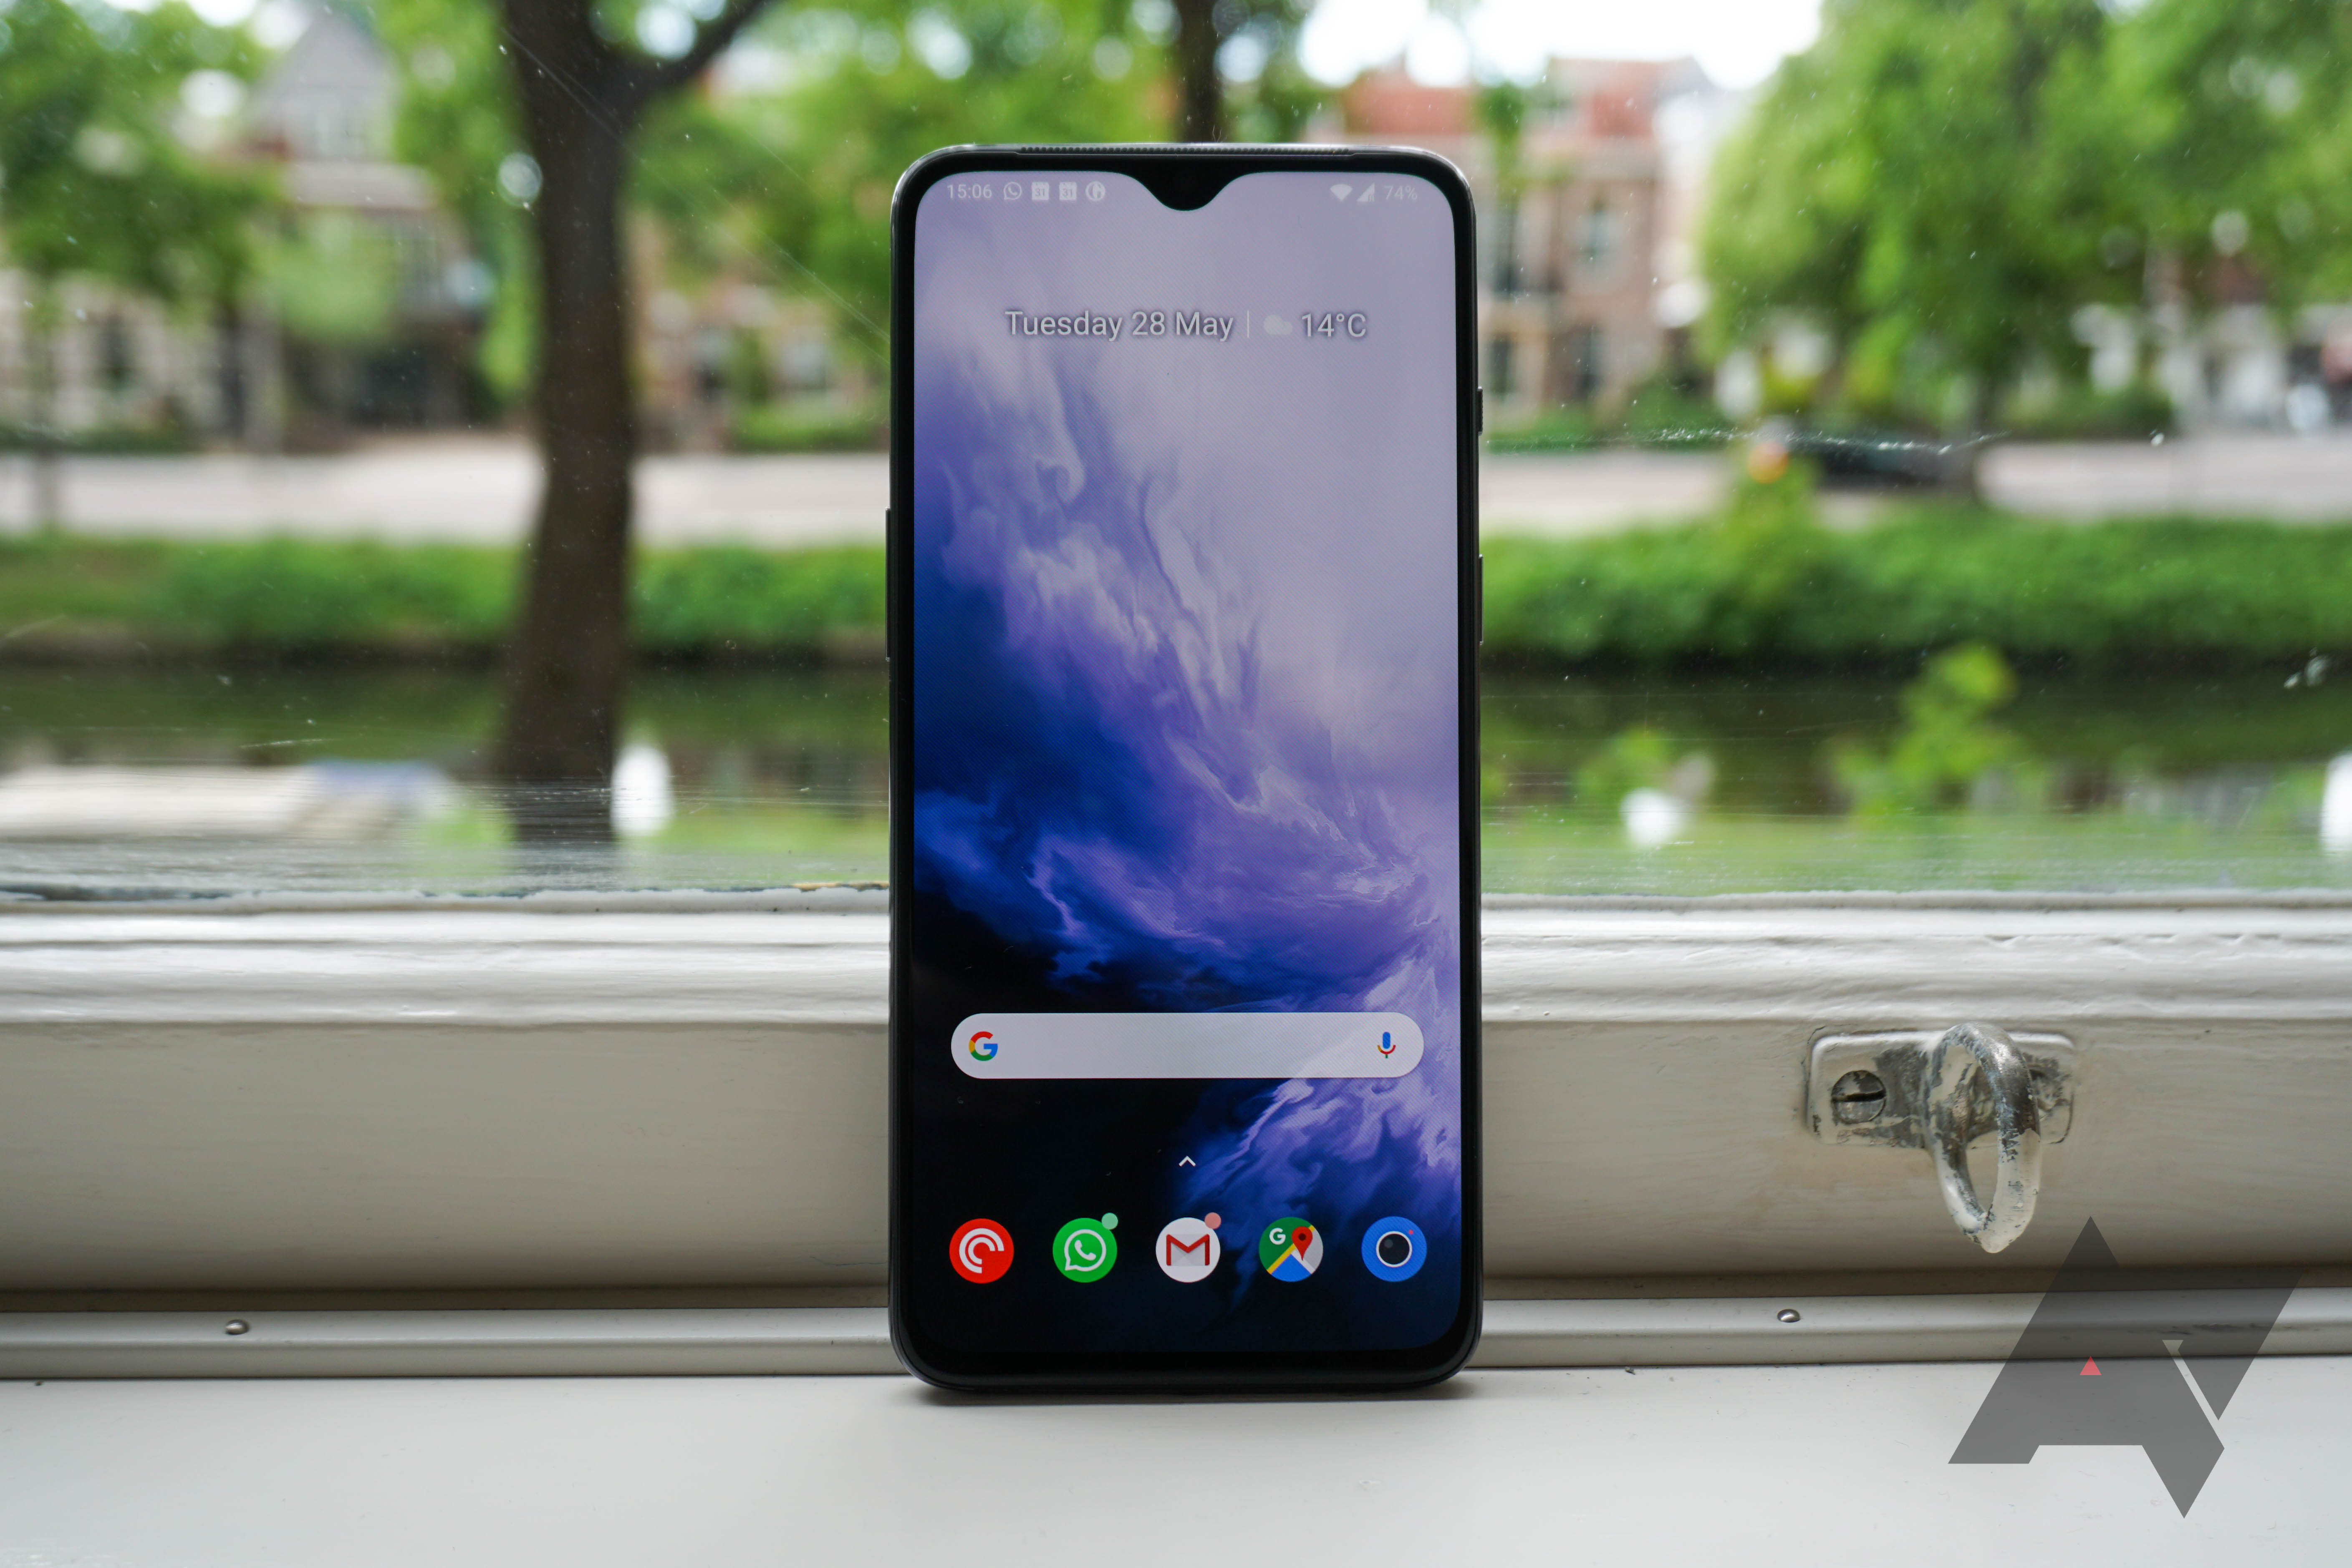 OnePlus 7 drops to £459 (£90 off) on Amazon, OnePlus 6T is £335 (£194 off)